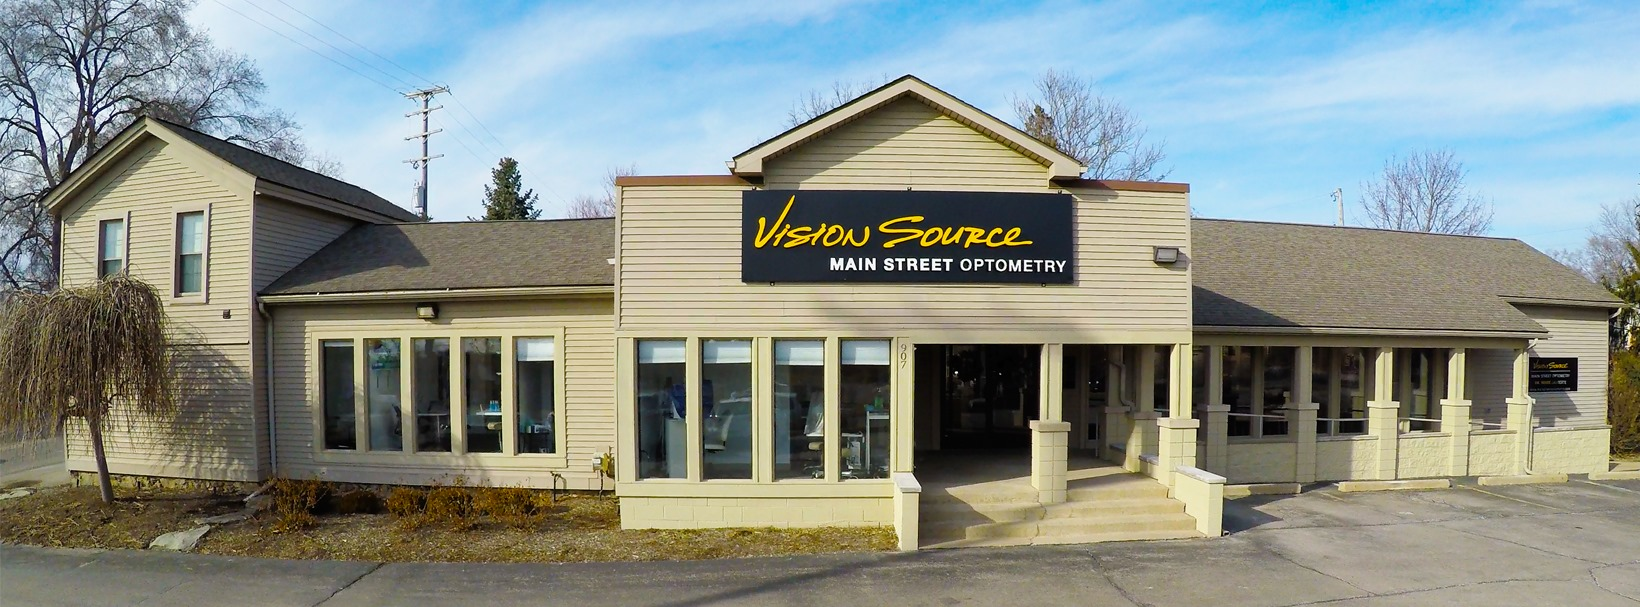 """Featured image for """"Main Street Optometry: Vision Source"""""""